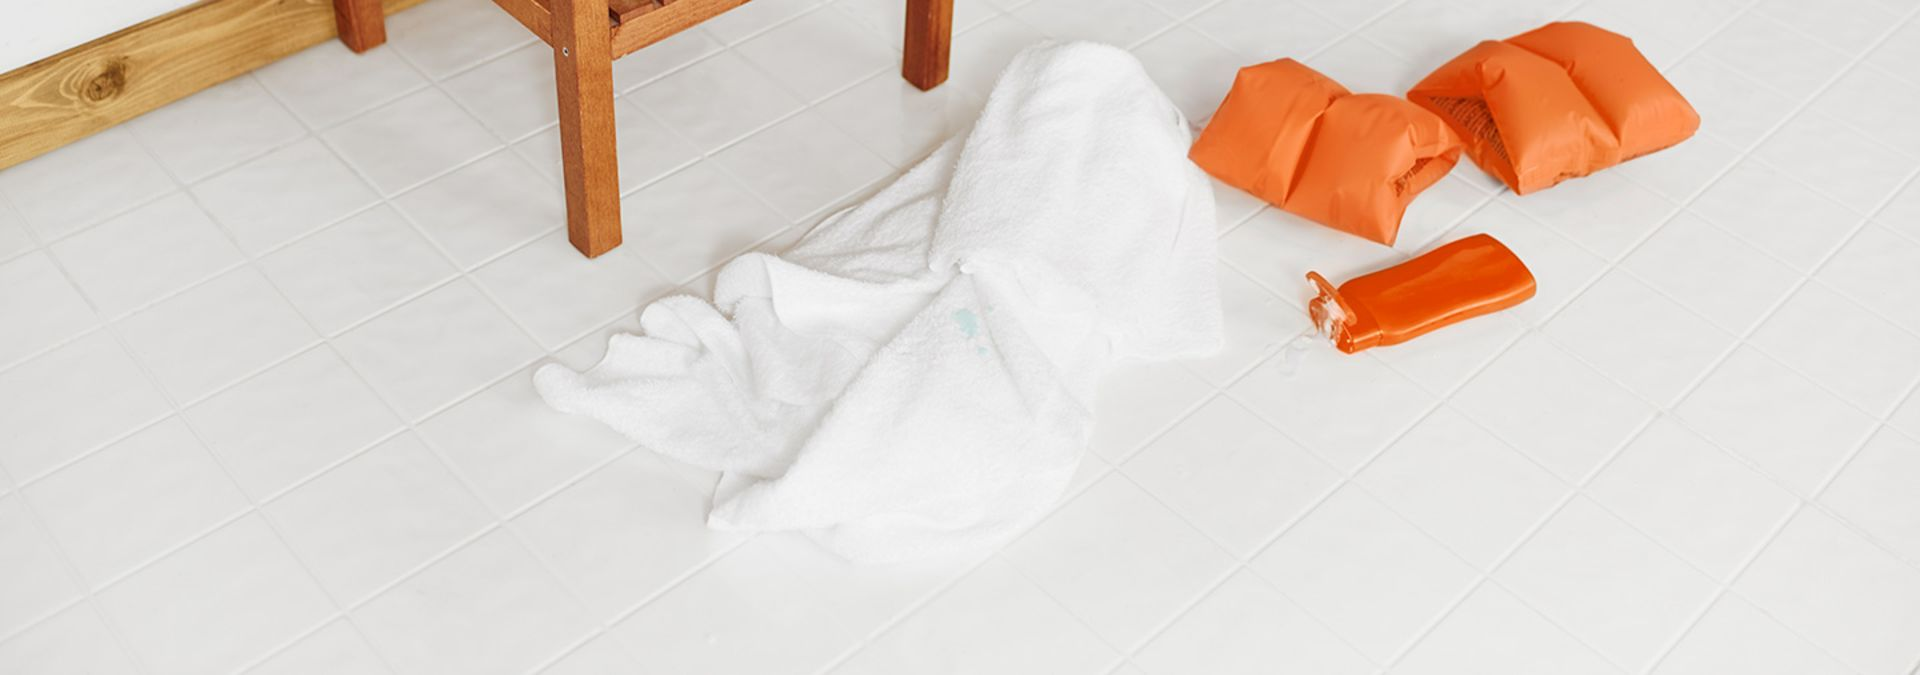 Sunscreen stains on a white towel